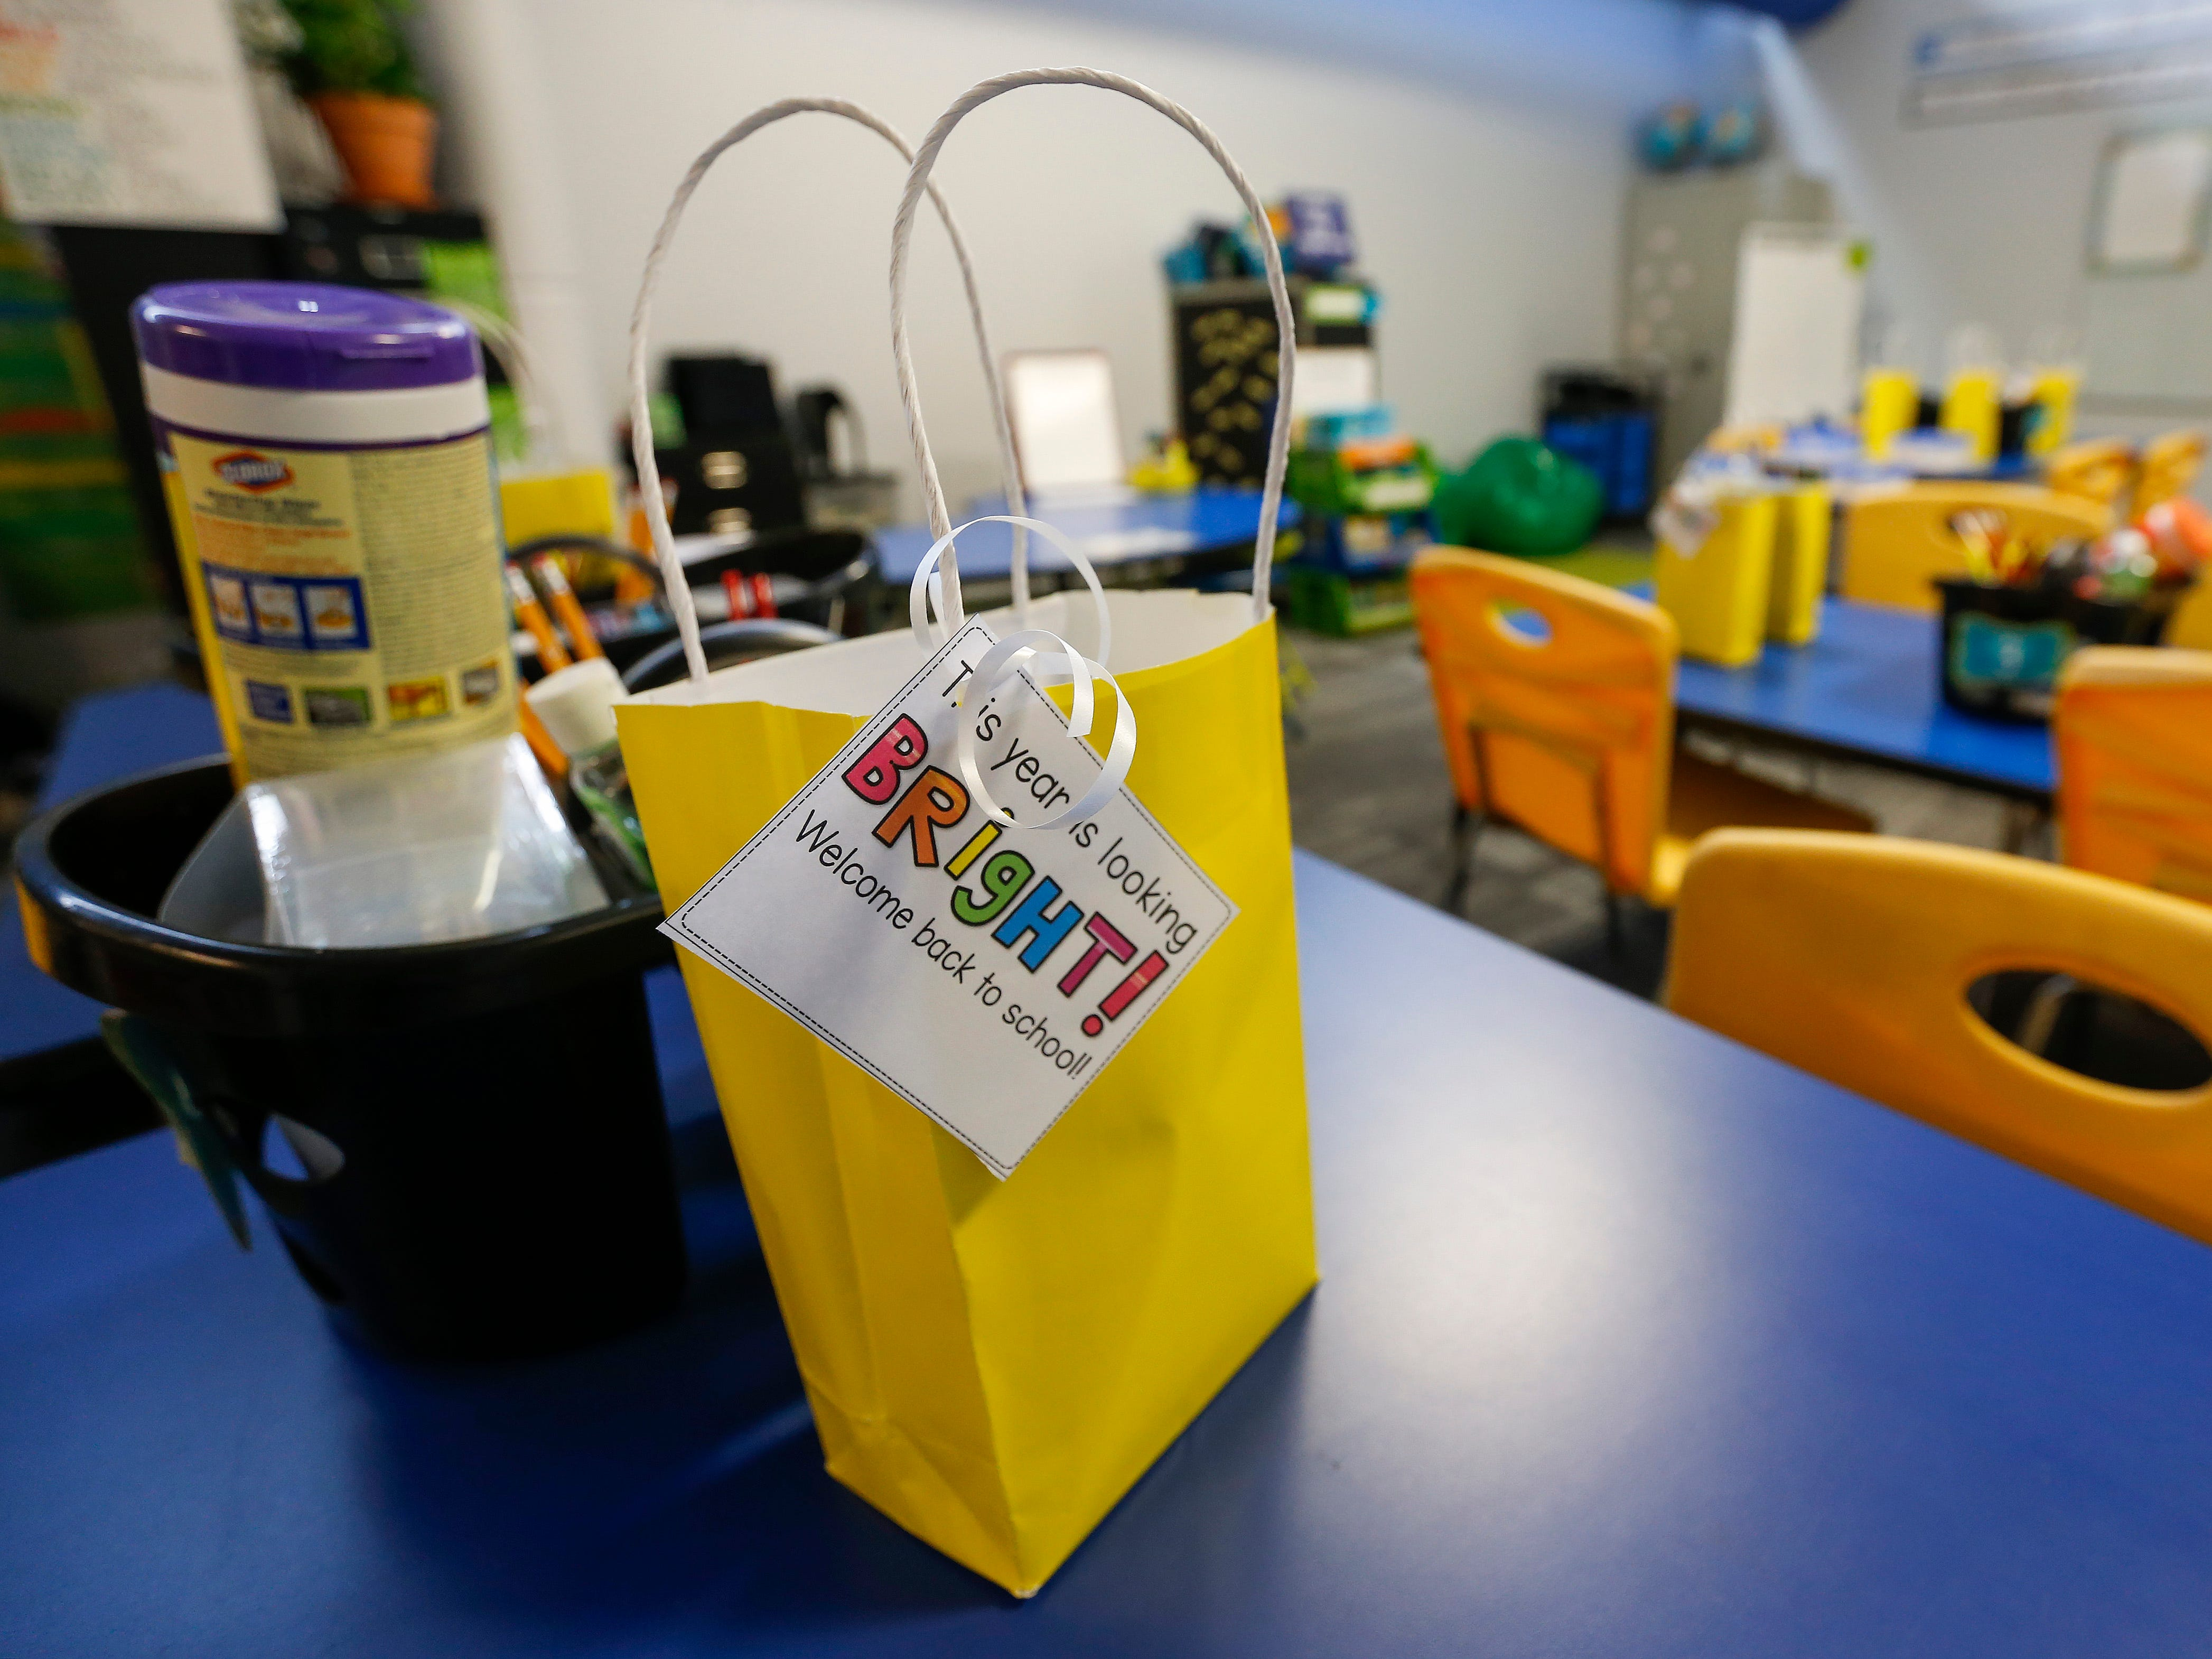 A gift bag sits on a table at the Summit Preparatory School's new location at 202 E. Walnut Lawn St.